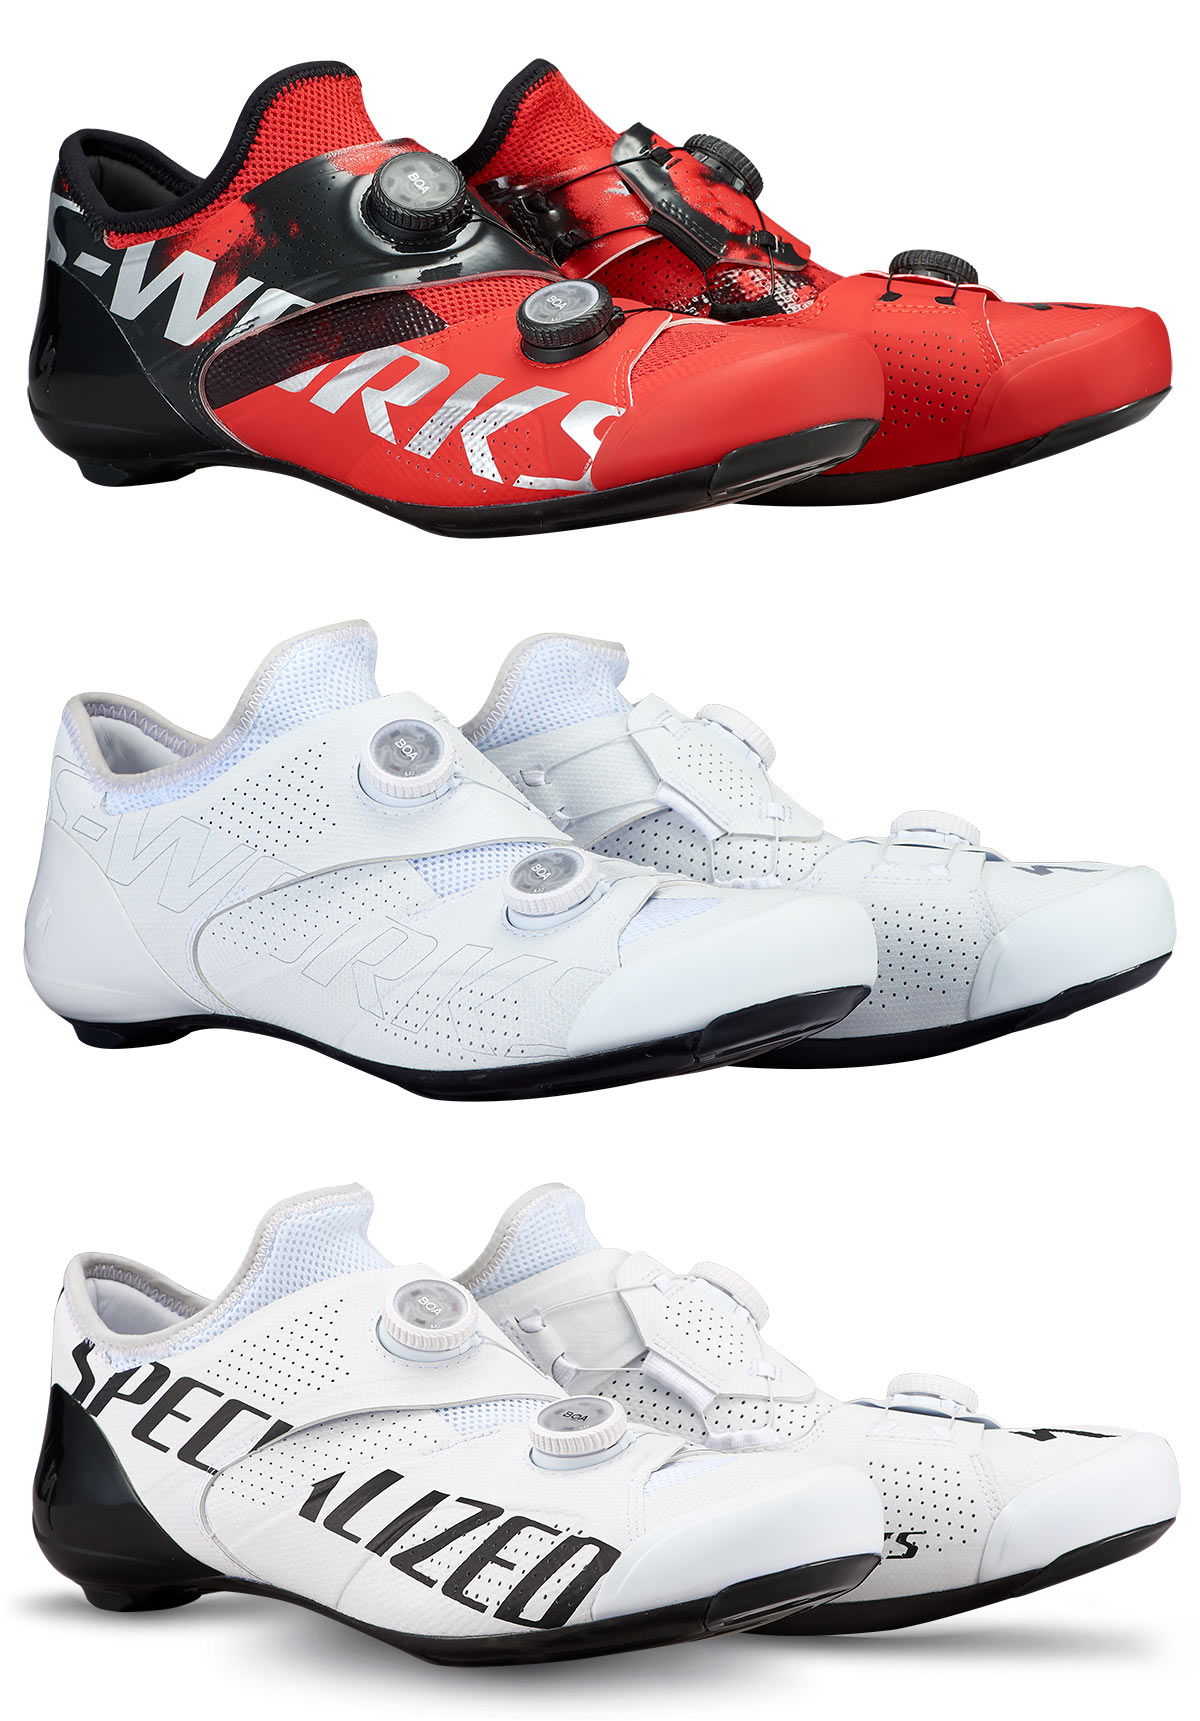 specialized ares s-works road bike shoes closeup features and colors